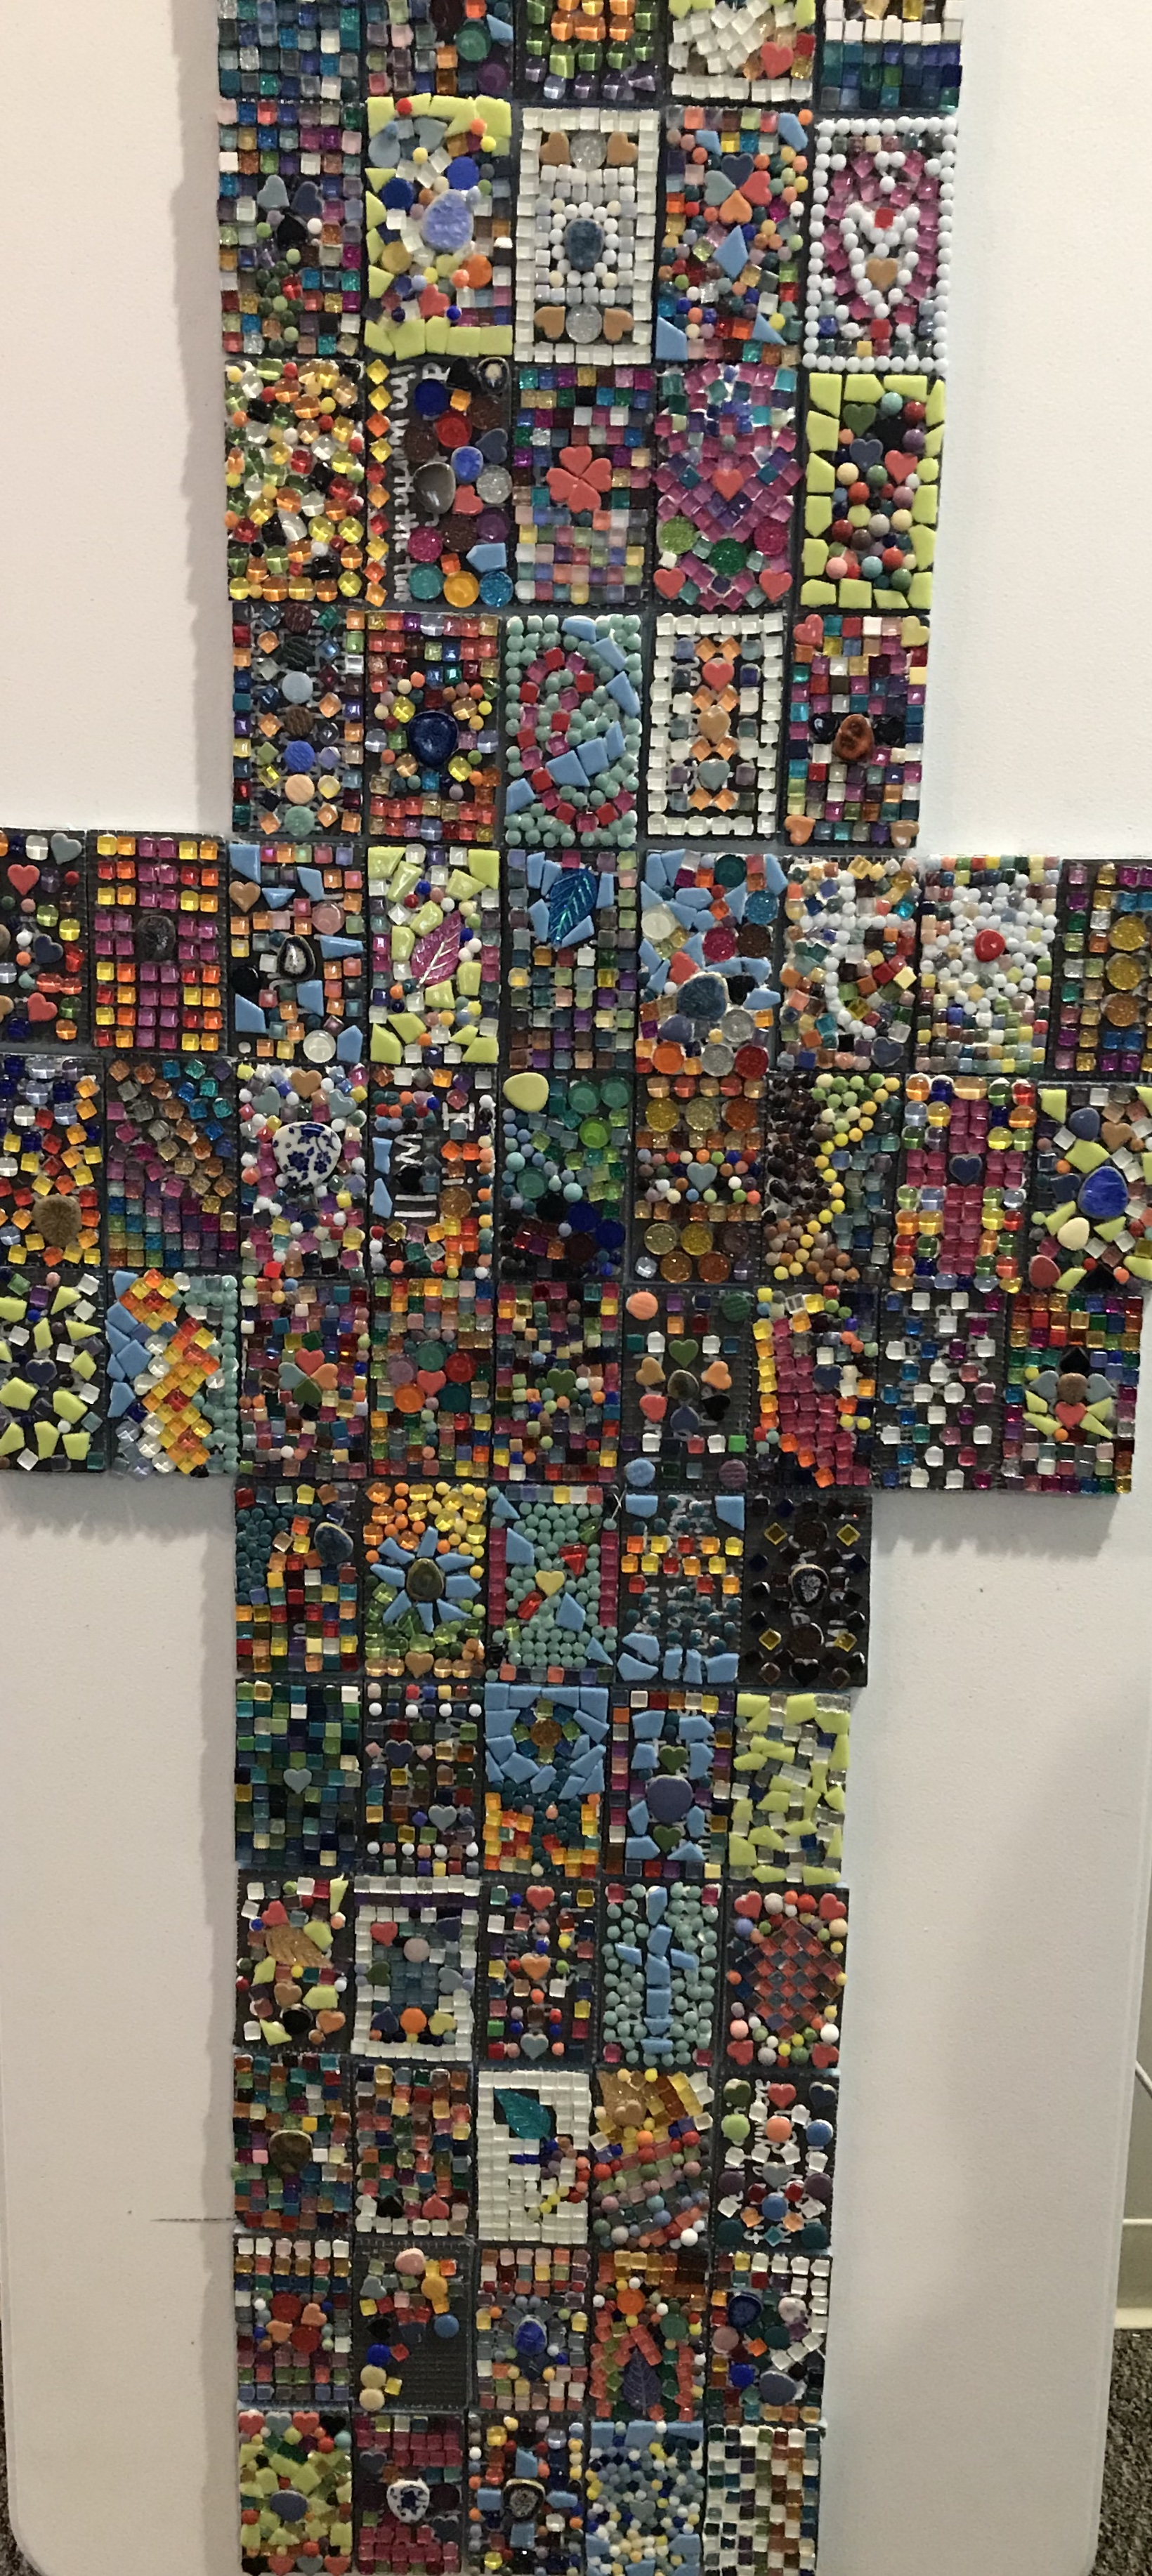 A mosaic made during the women's retreat to demonstrate how our brokenness is used by God to create something unexpected and beautiful.